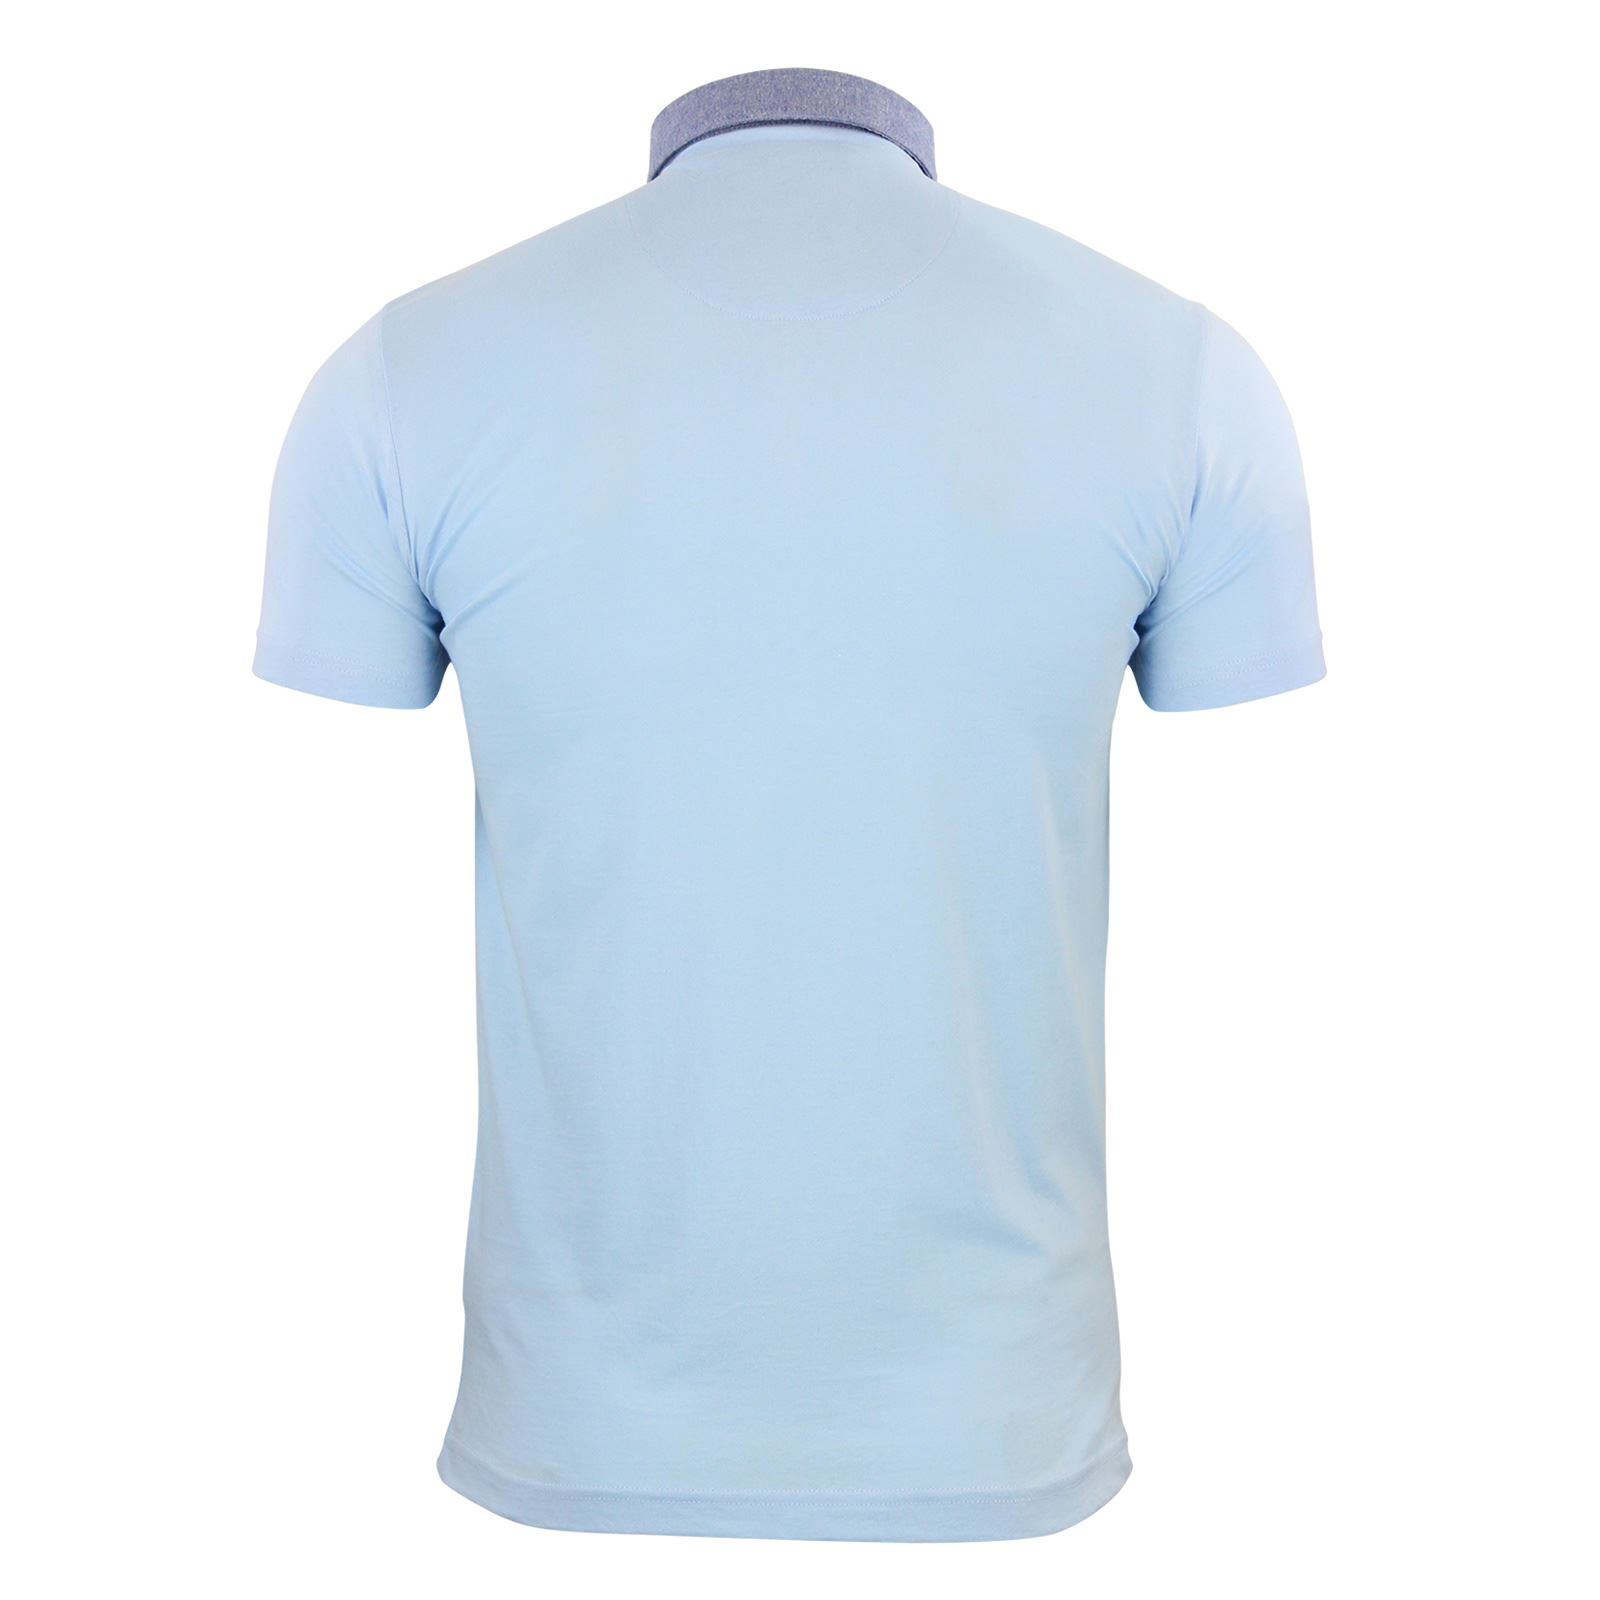 Mens-Polo-T-Shirt-Brave-Soul-Glover-Cotton-Collared-Short-Sleeve-Casual-Top thumbnail 40